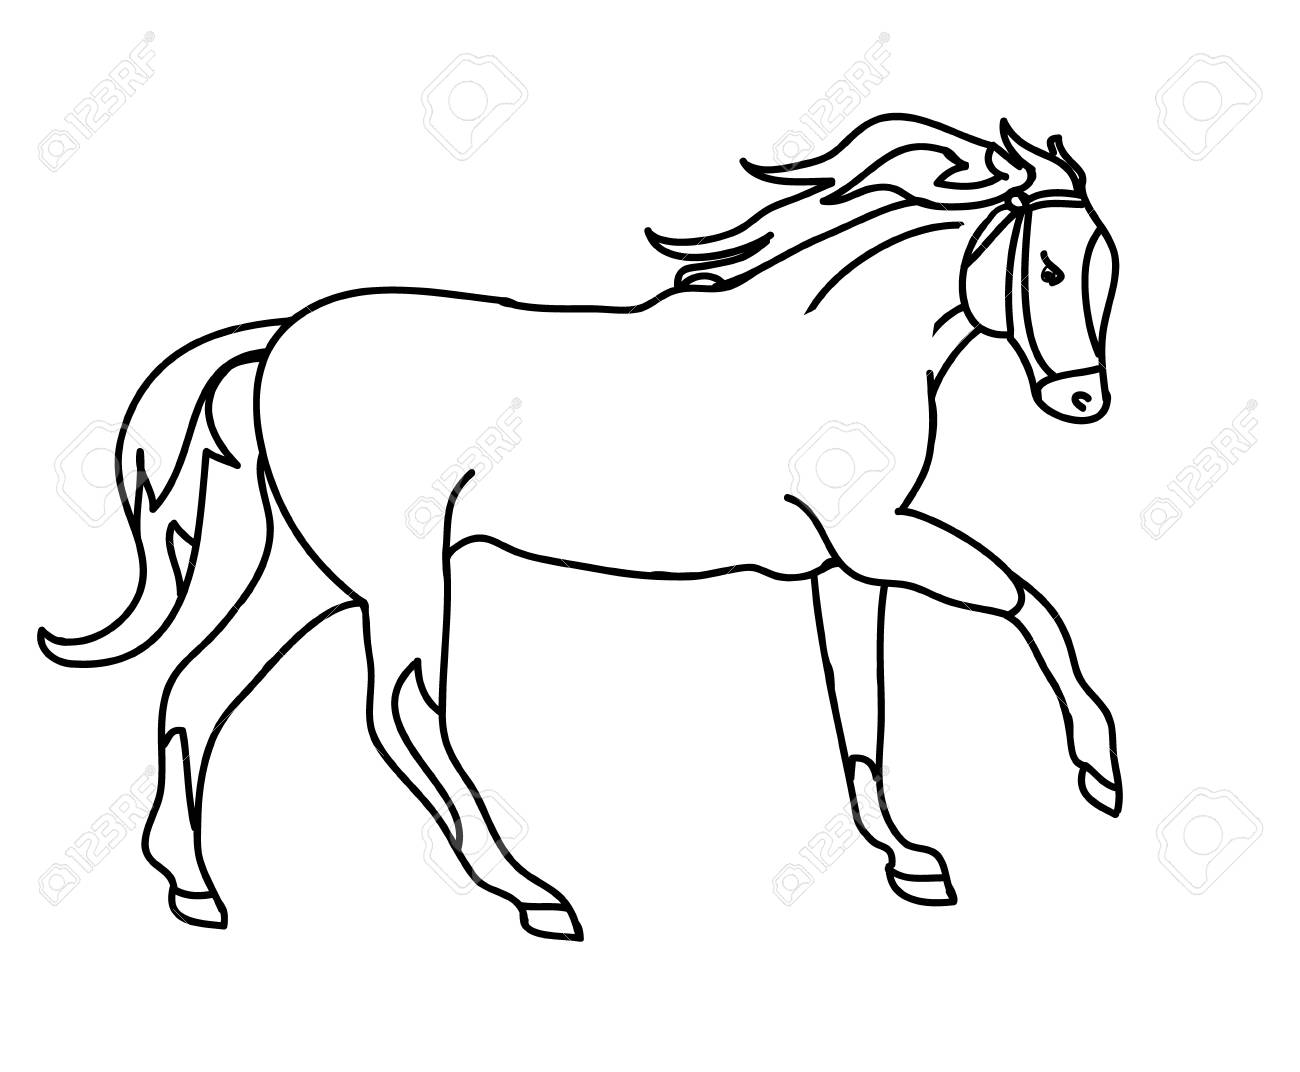 Graphic Silhouette Of A Galloping Horse The Drawing Of Lines Royalty Free Cliparts Vectors And Stock Illustration Image 69990063